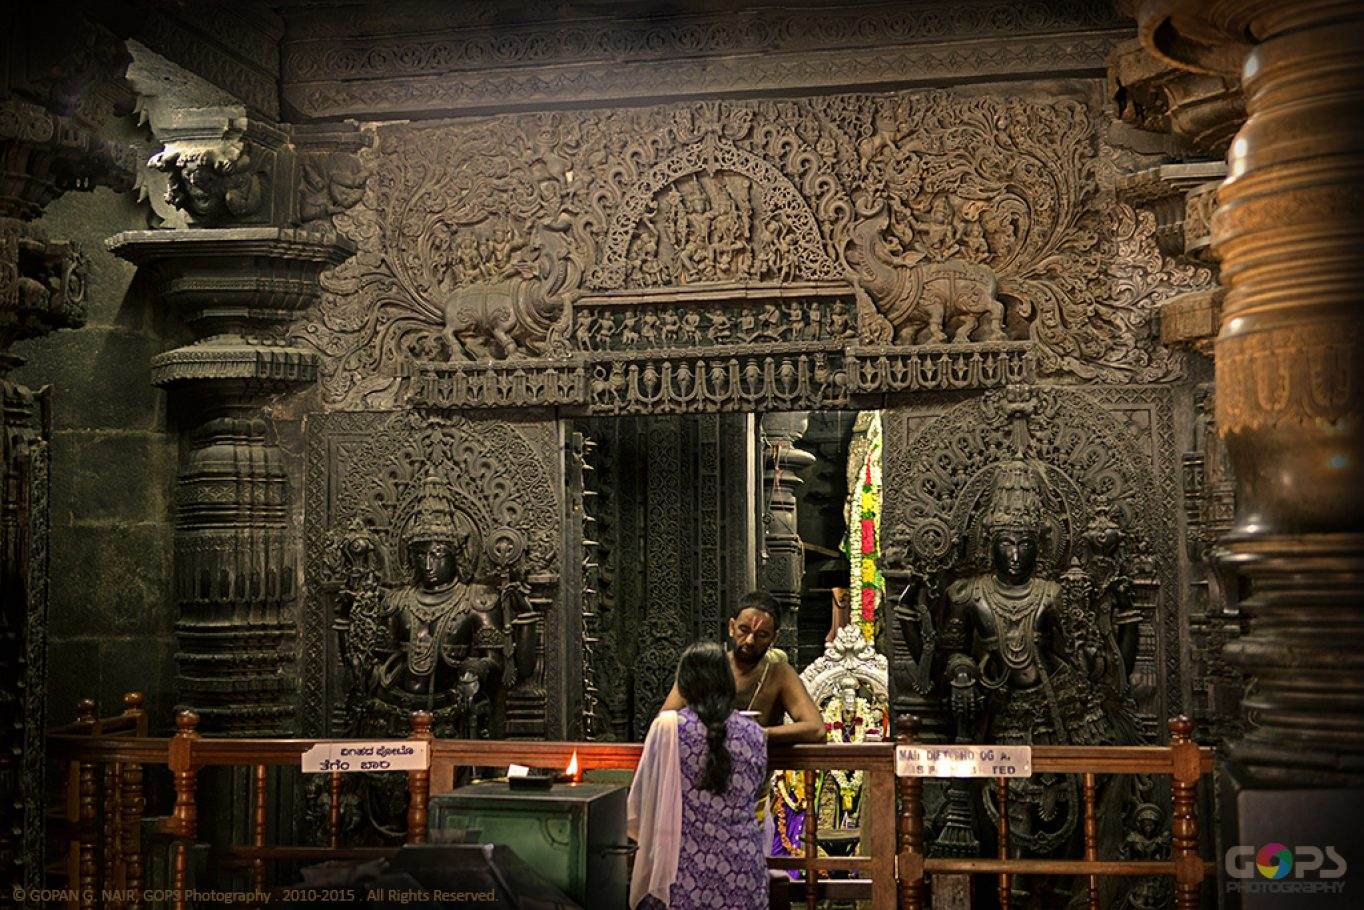 MOST INTRICATE CARVINGS AT BELUR, KARNATAKA, INDIA